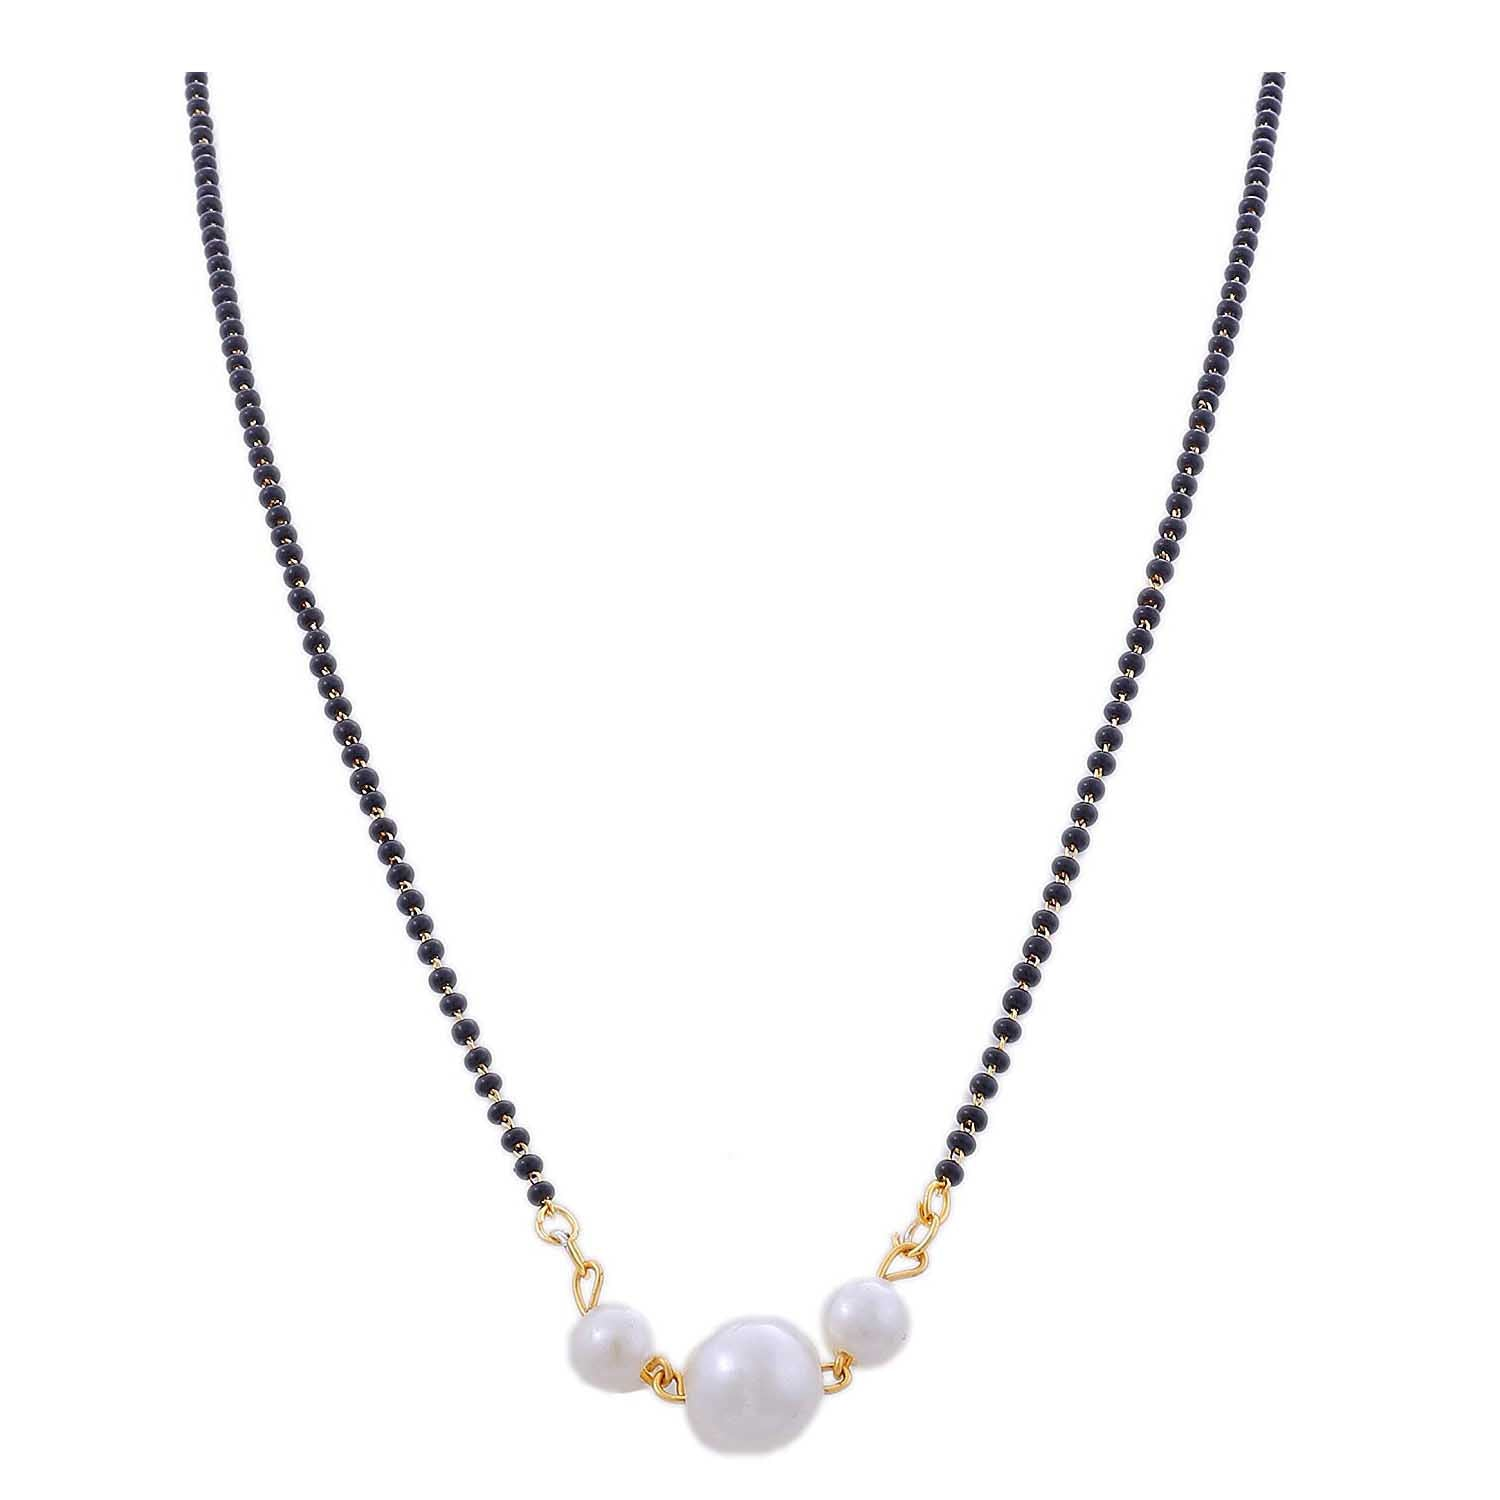 2a78d3b8d3aac JFL-Stylish One Gram Gold Plated Pearl Black Beads Mangalsutra For ...